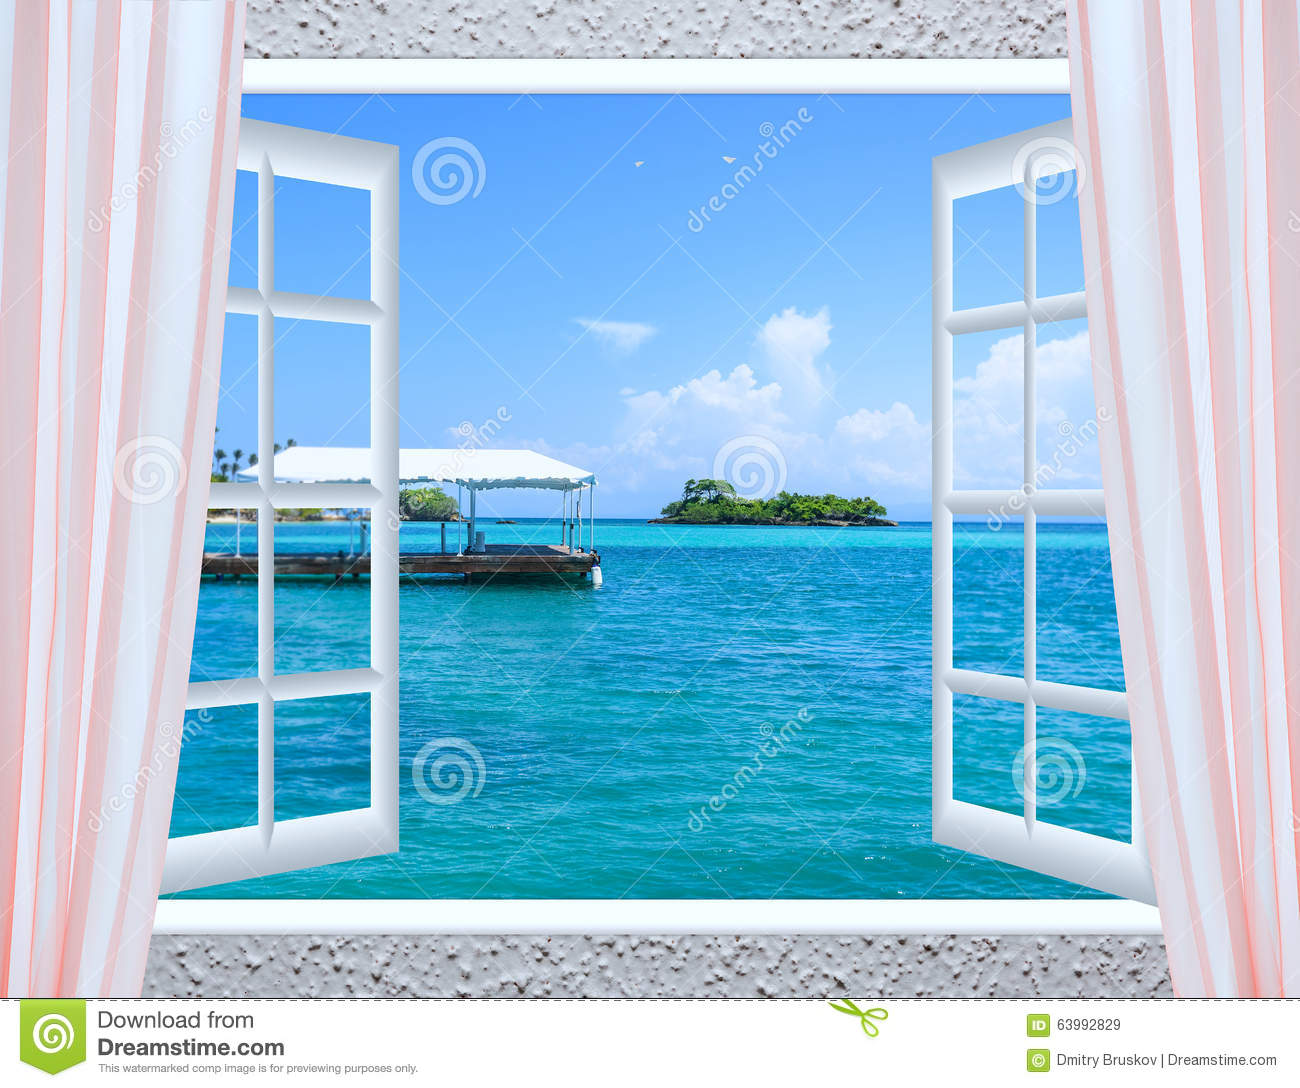 Fen tre ouverte vers la mer image stock image 63992829 for Fenetre dos windows 8